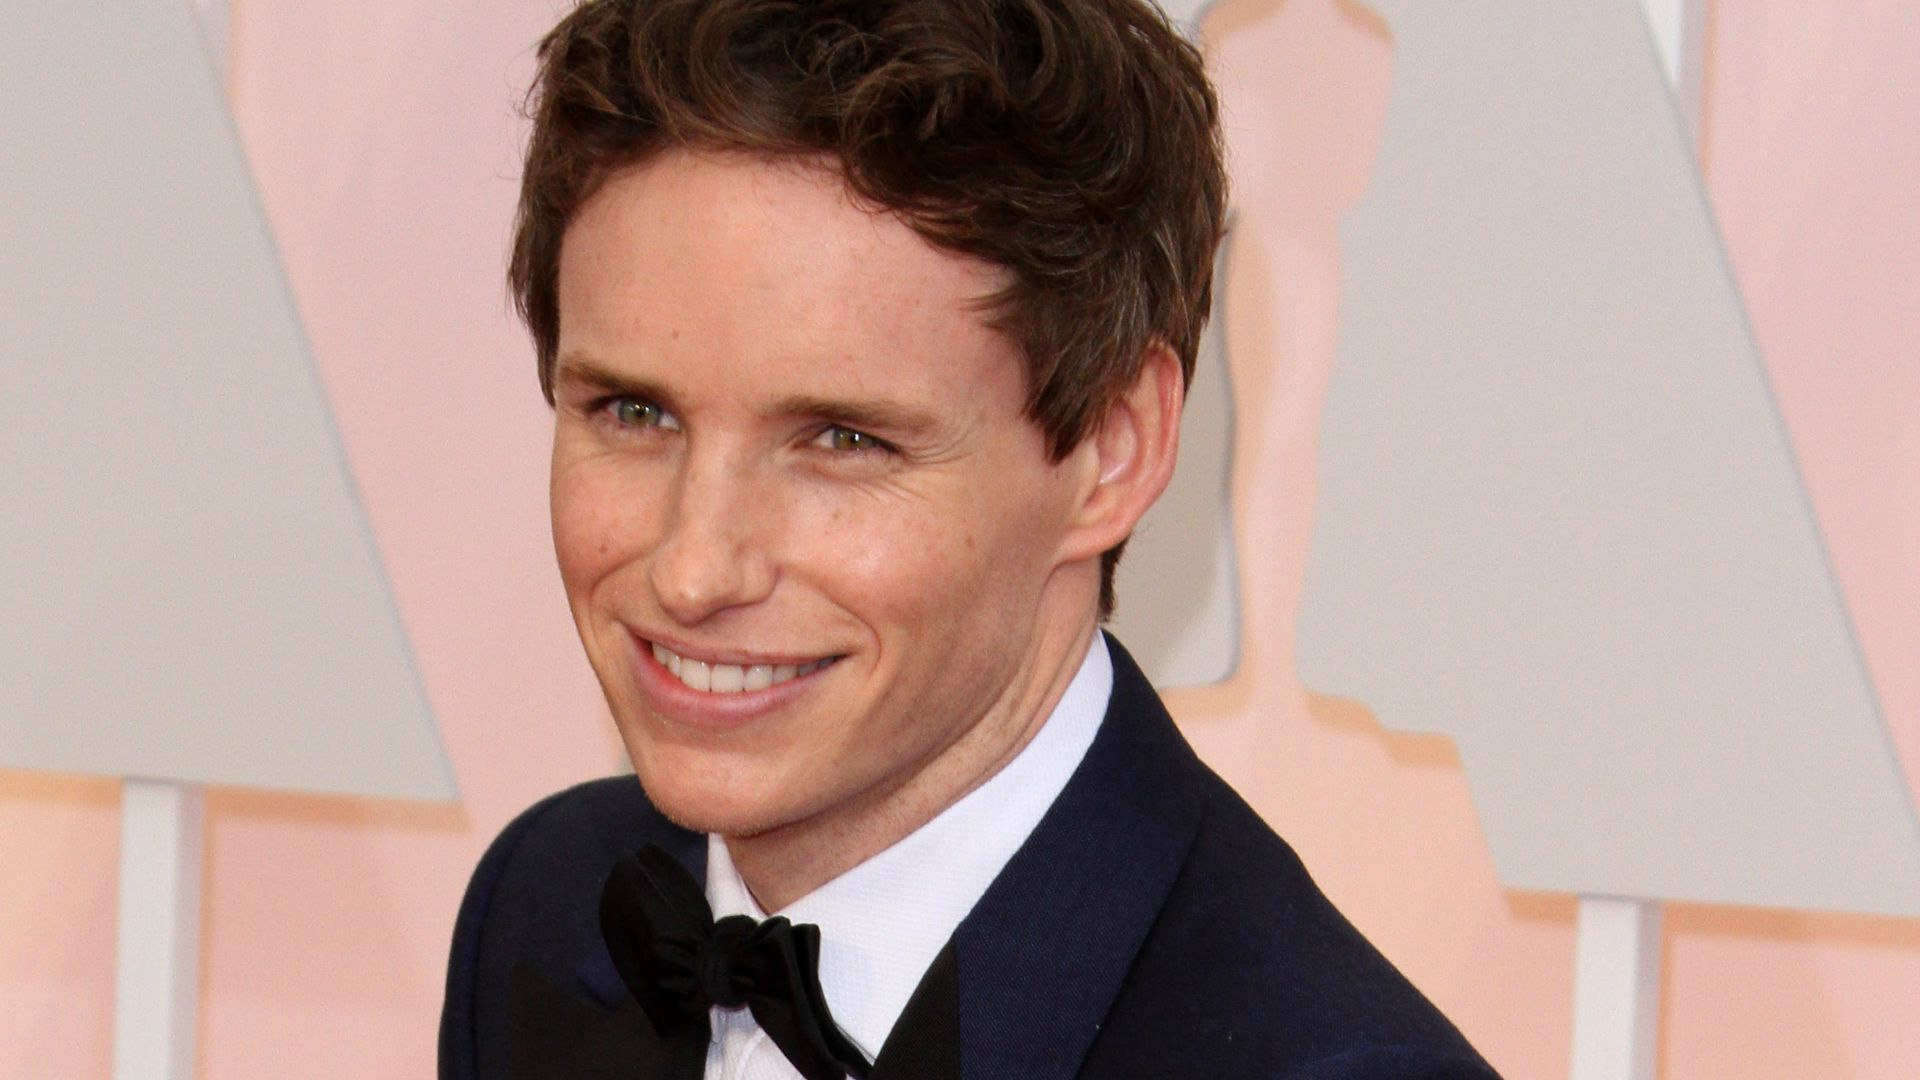 Eddie Redmayne stars as a transgender woman in The Danish Girl